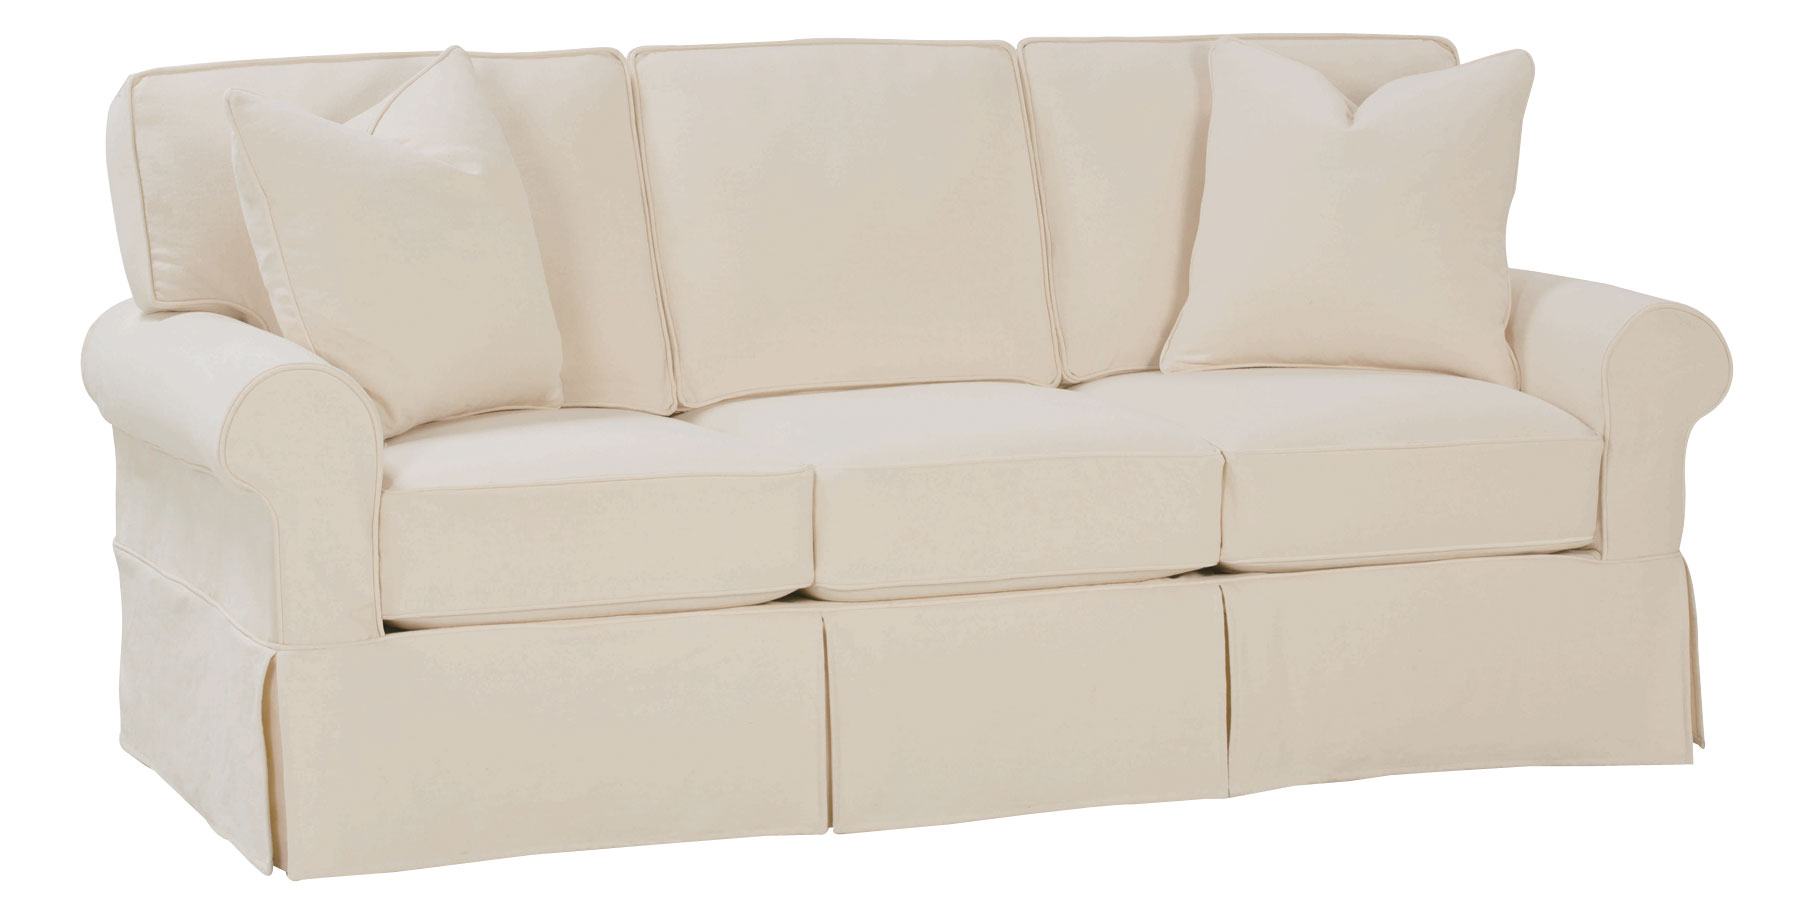 Christine quick ship slipcovered sofa collection for Furniture sofas and couches